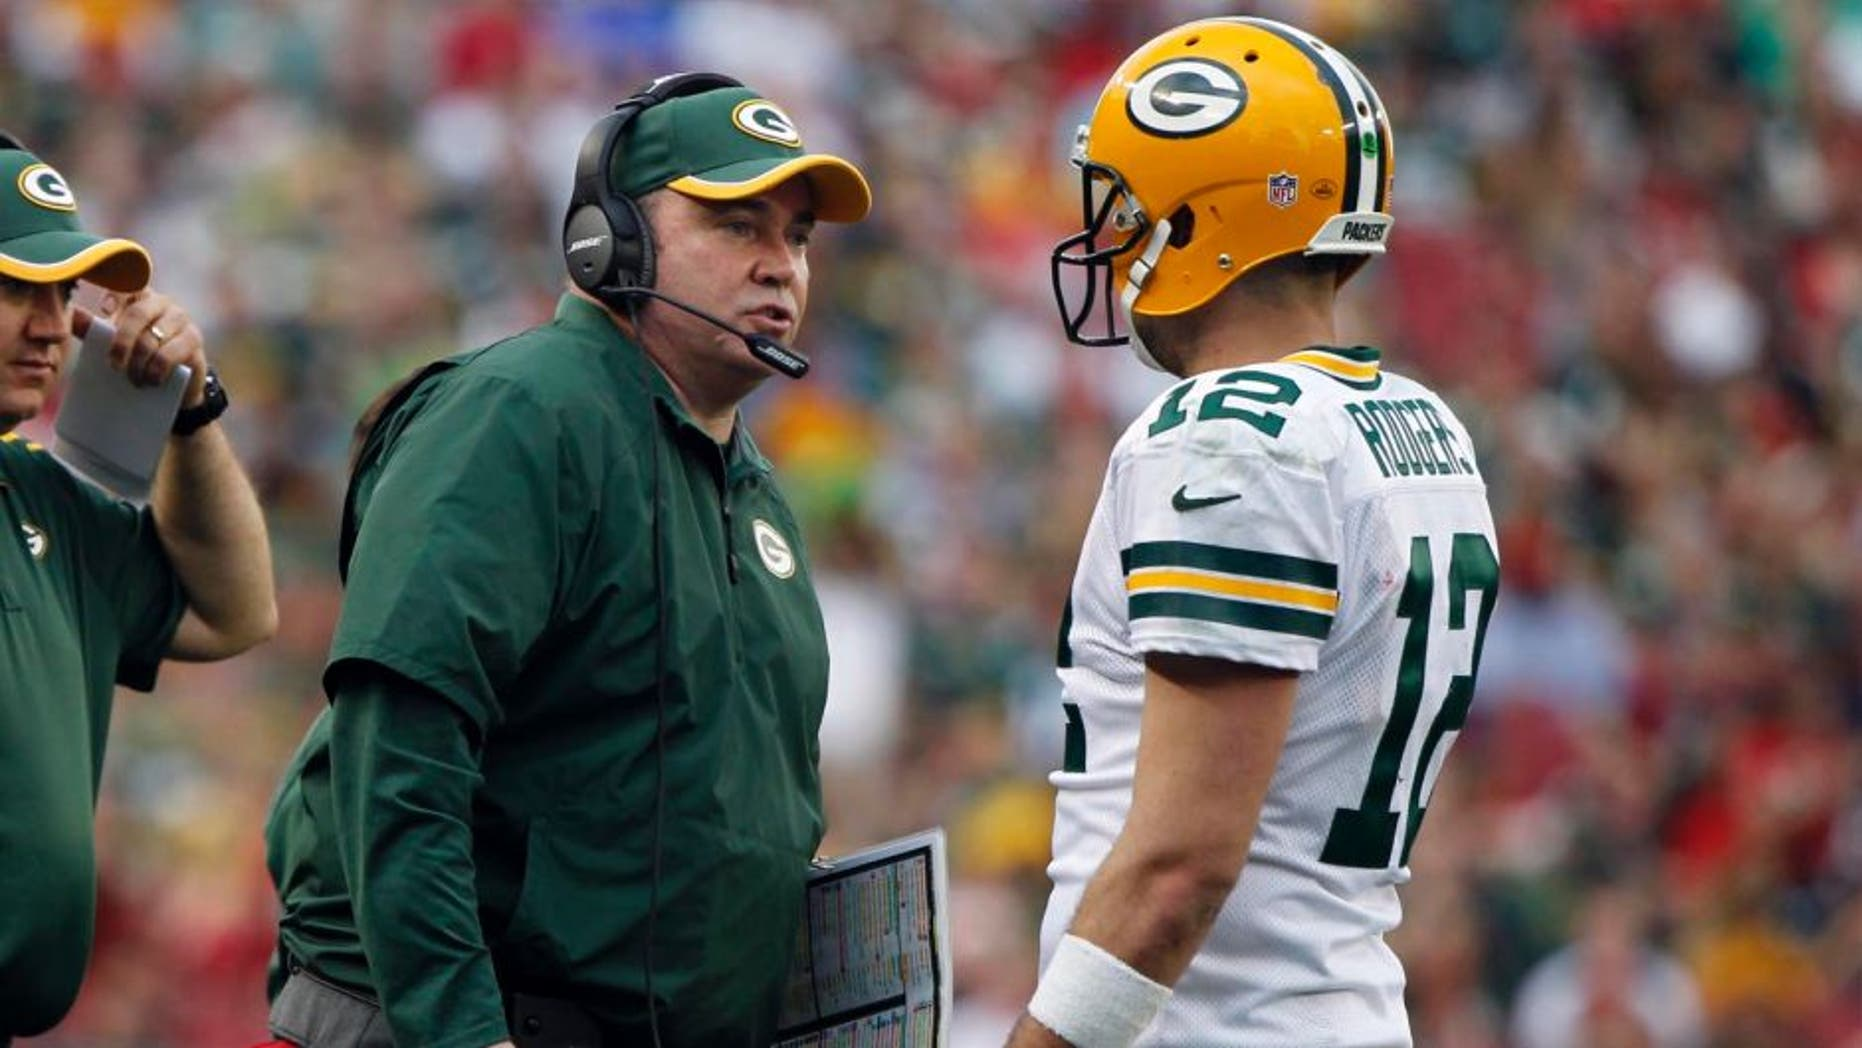 Dec 21, 2014; Tampa, FL, USA; Green Bay Packers head coach Mike McCarthy talks with quarterback Aaron Rodgers (12) against the Tampa Bay Buccaneers during the second half at Raymond James Stadium. Green Bay Packers defeated the Tampa Bay Buccaneers 20-3. Mandatory Credit: Kim Klement-USA TODAY Sports